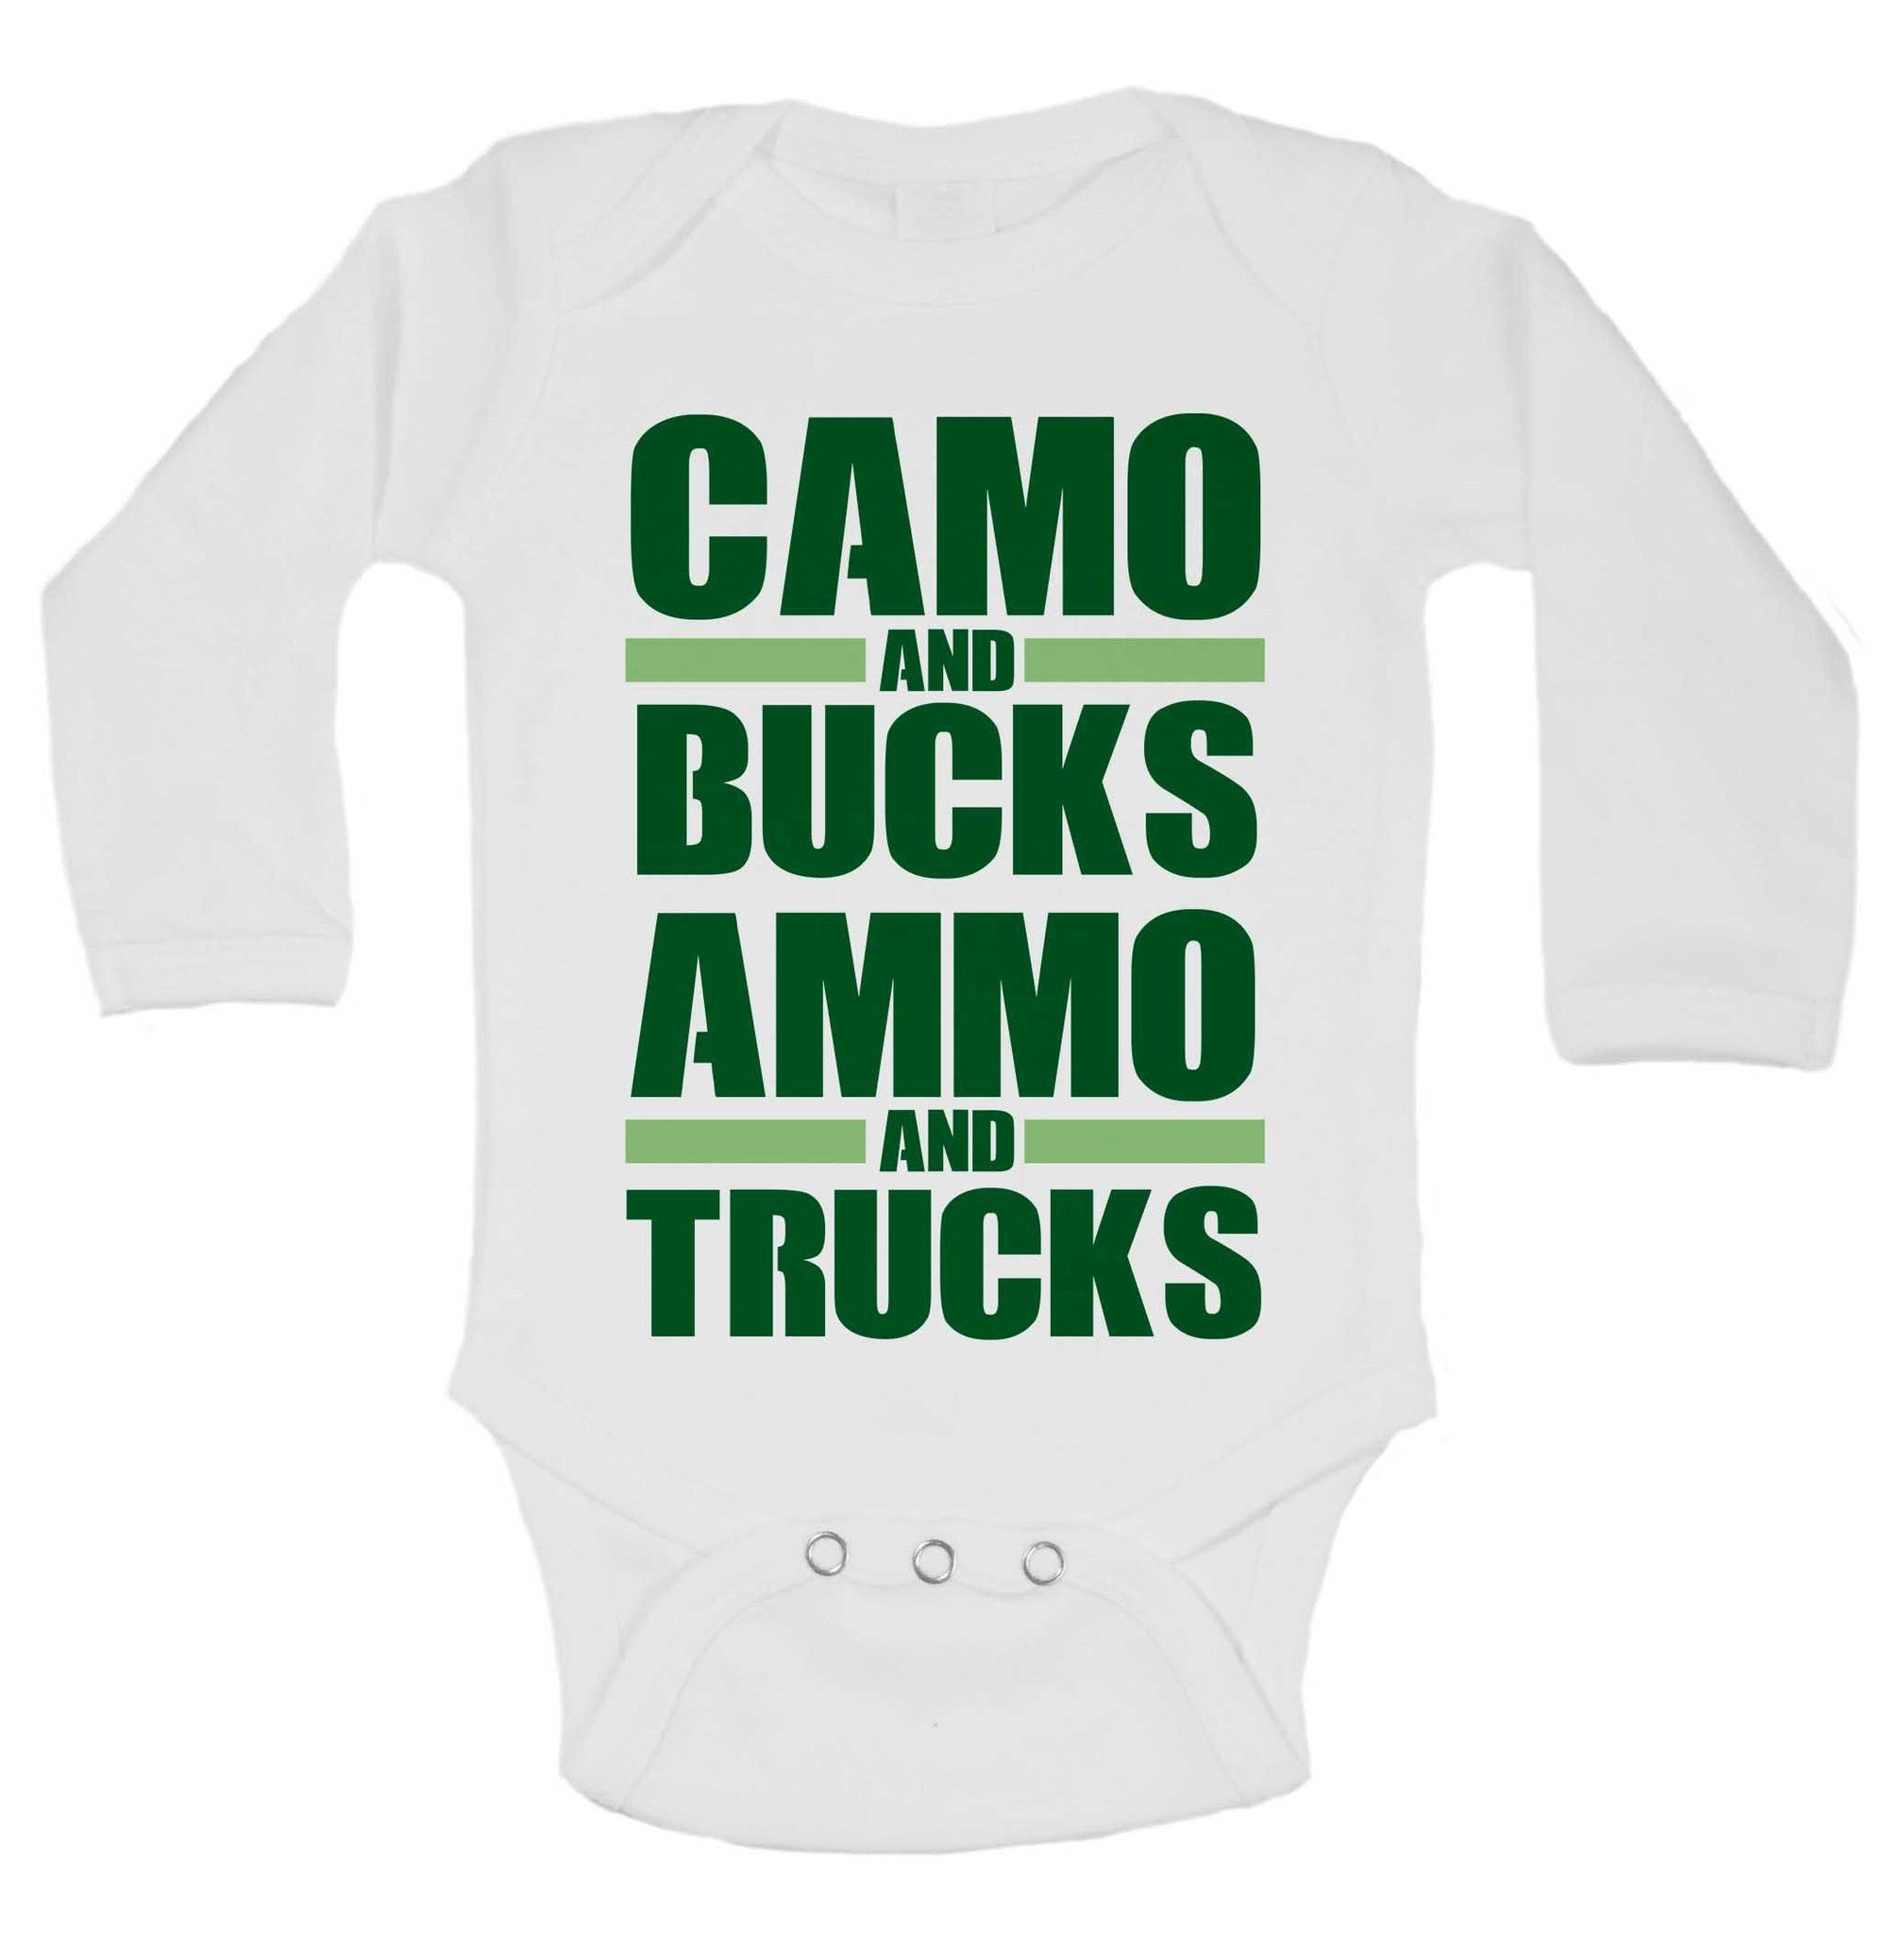 Camo And Bucks Ammo And Trucks Funny Kids Onesie - 230 - Funny Shirts Tank Tops Burnouts and Triblends  - 1